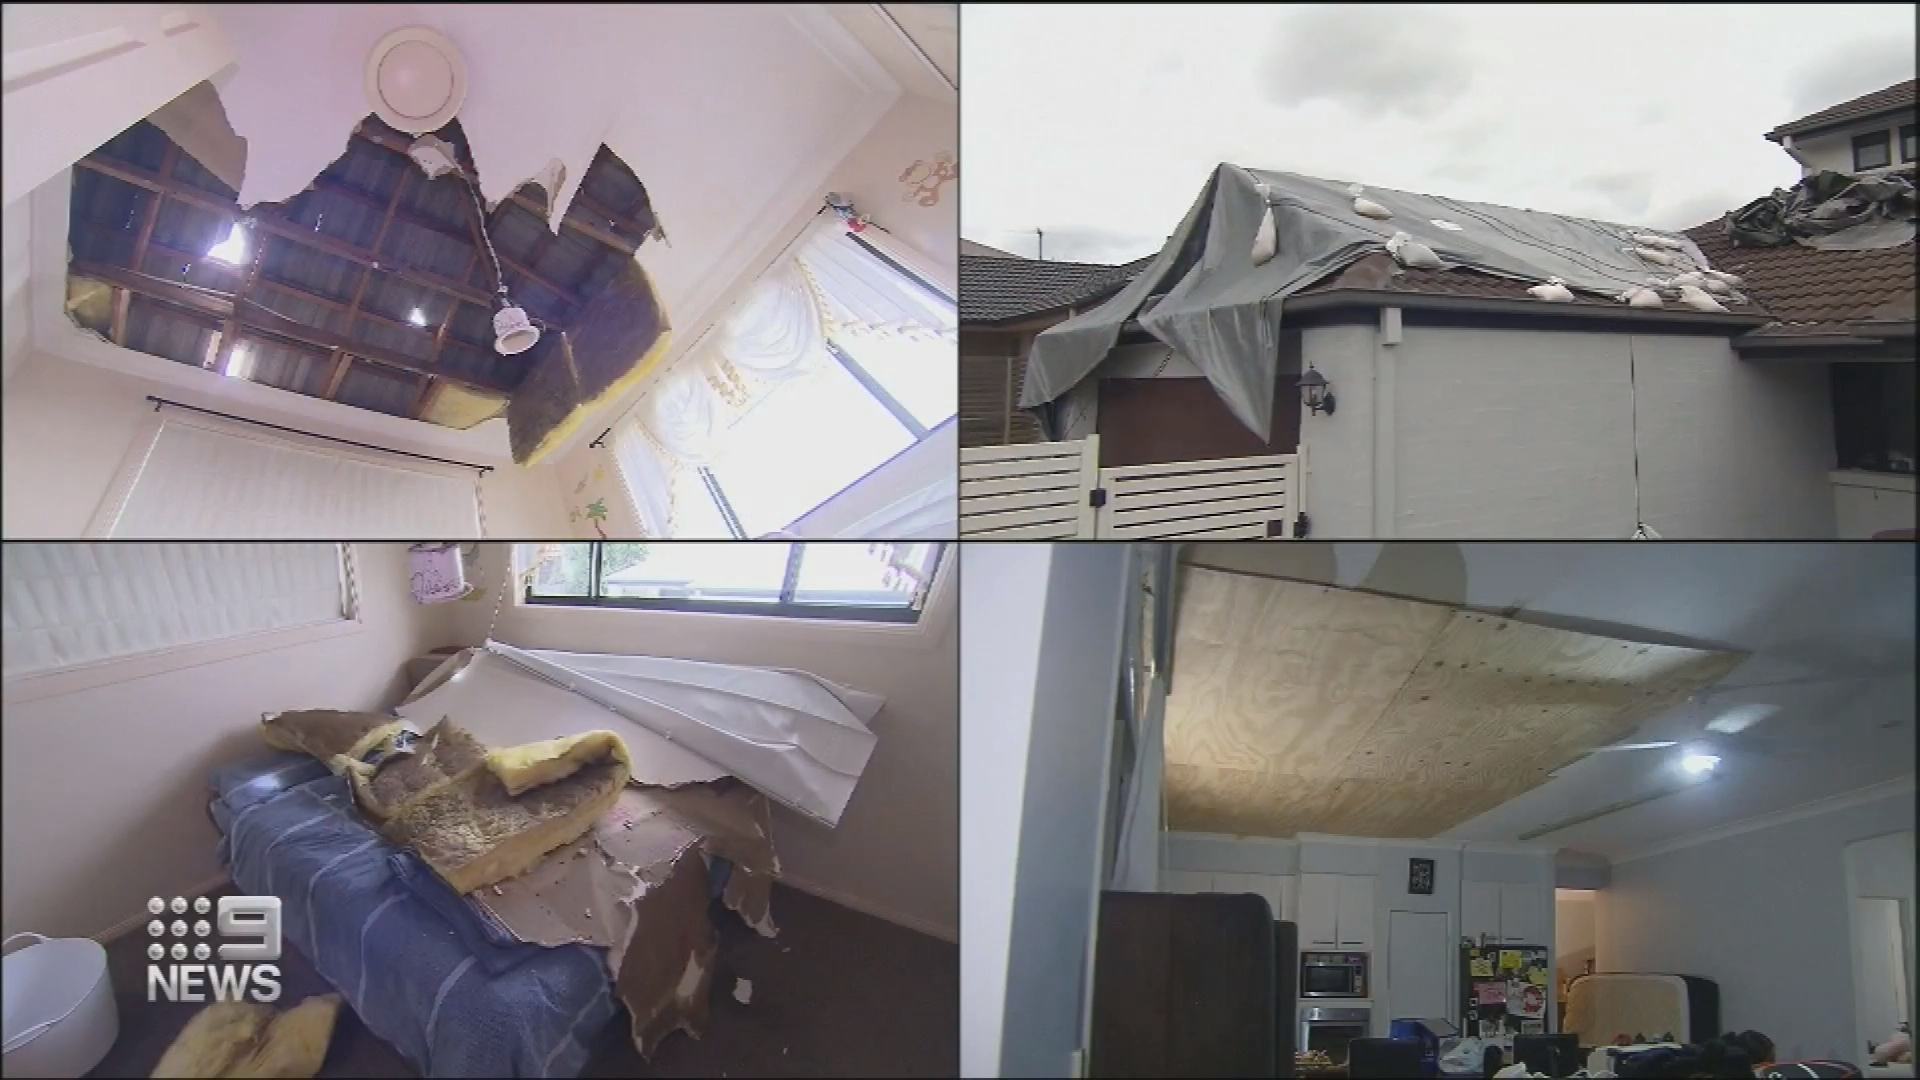 Intense storms leave families with extensive homes damage